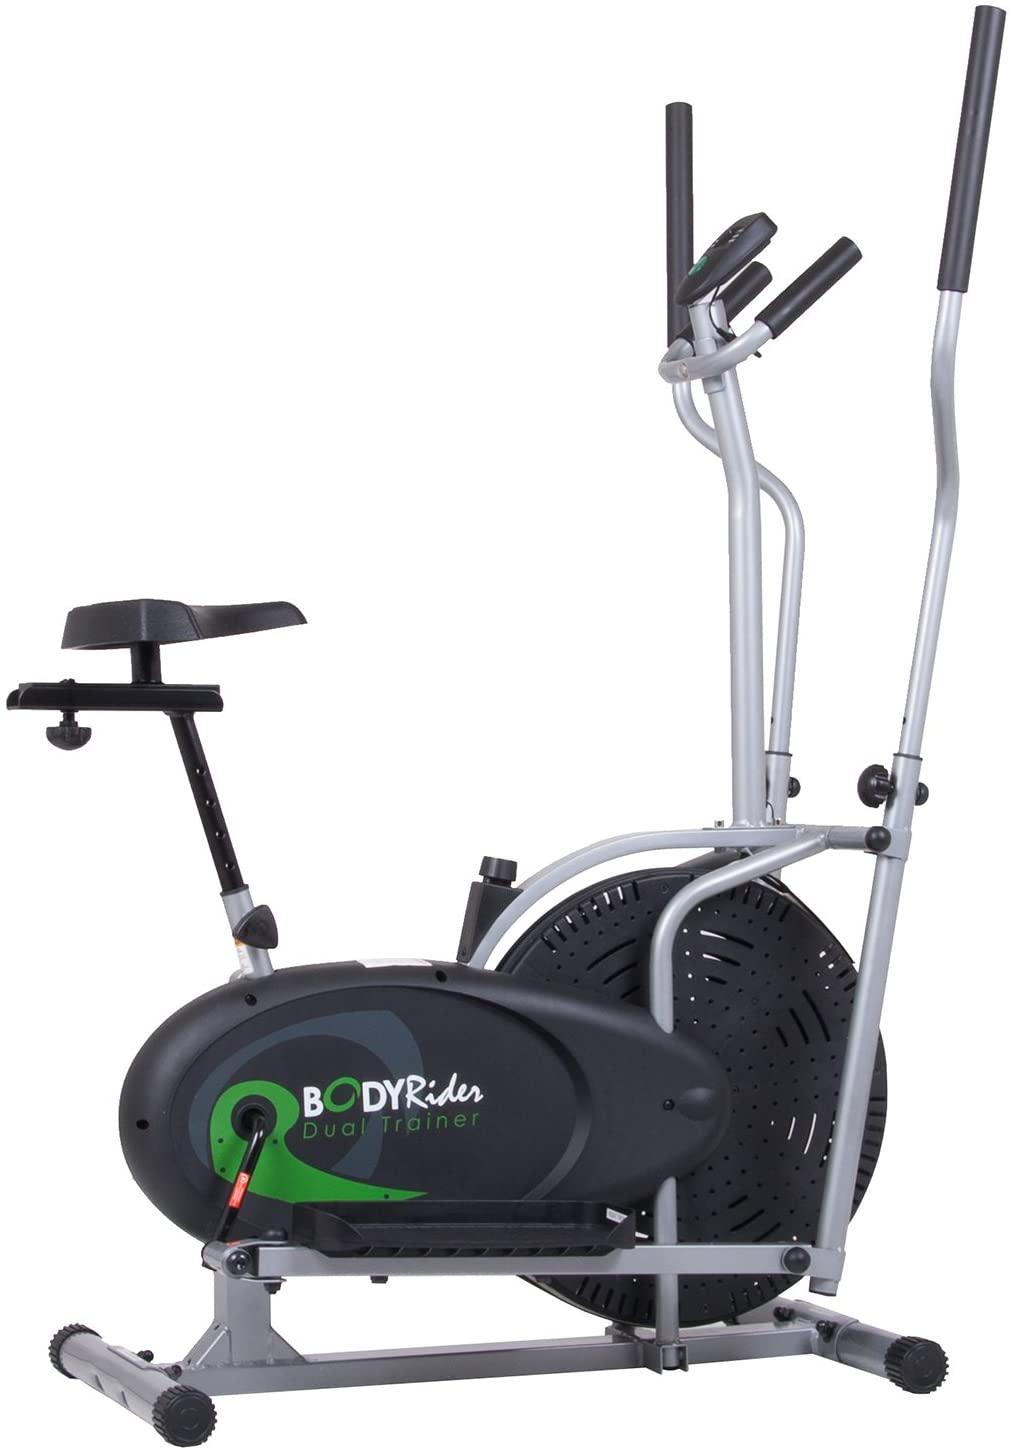 Amazon.com : Body Rider Elliptical Trainer and Exercise Bike with ...